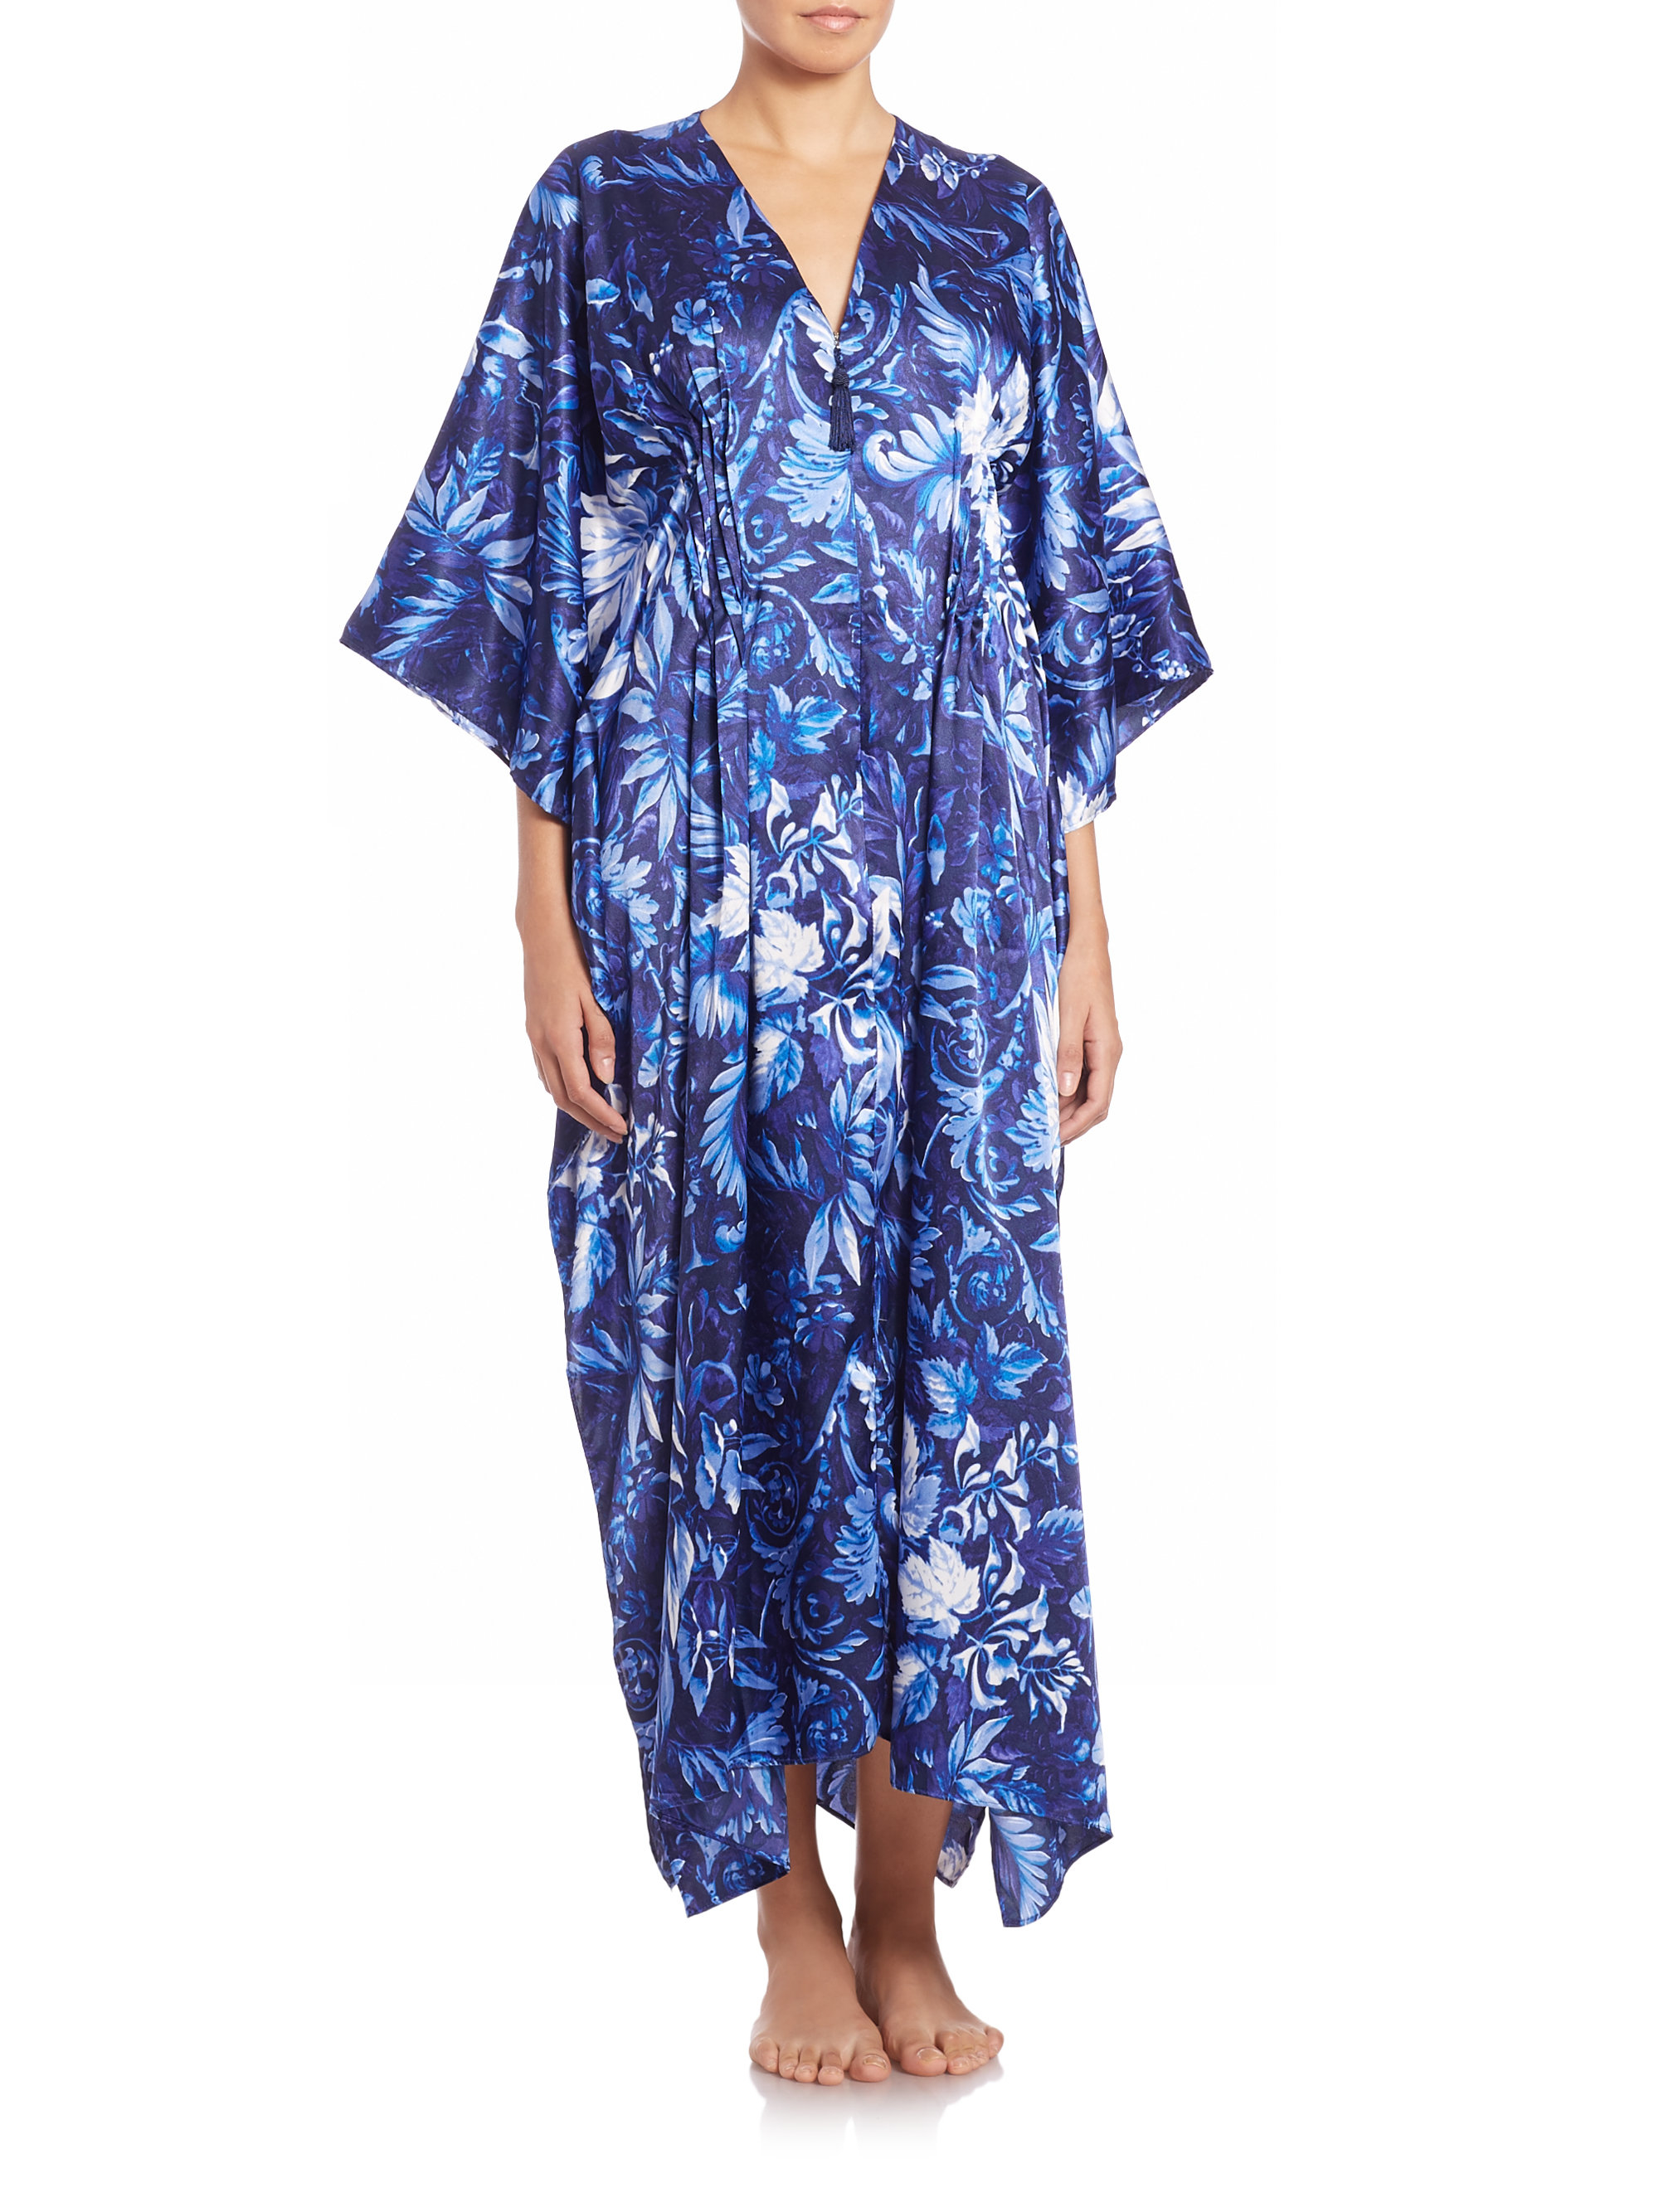 Oscar de la renta midnight vines satin caftan in blue lyst for Caftan avec satin de chaise